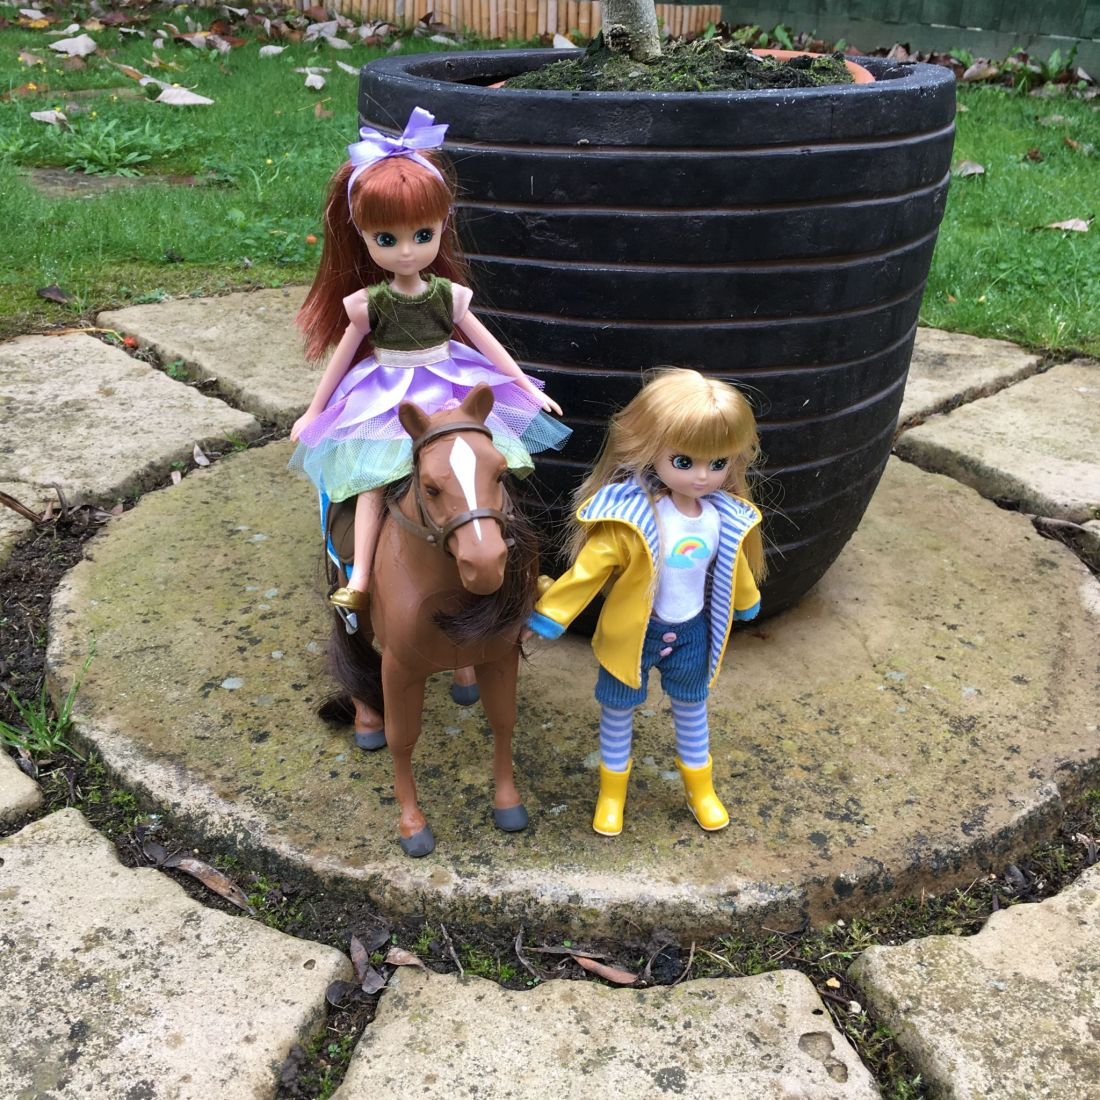 Lottie dolls and pony